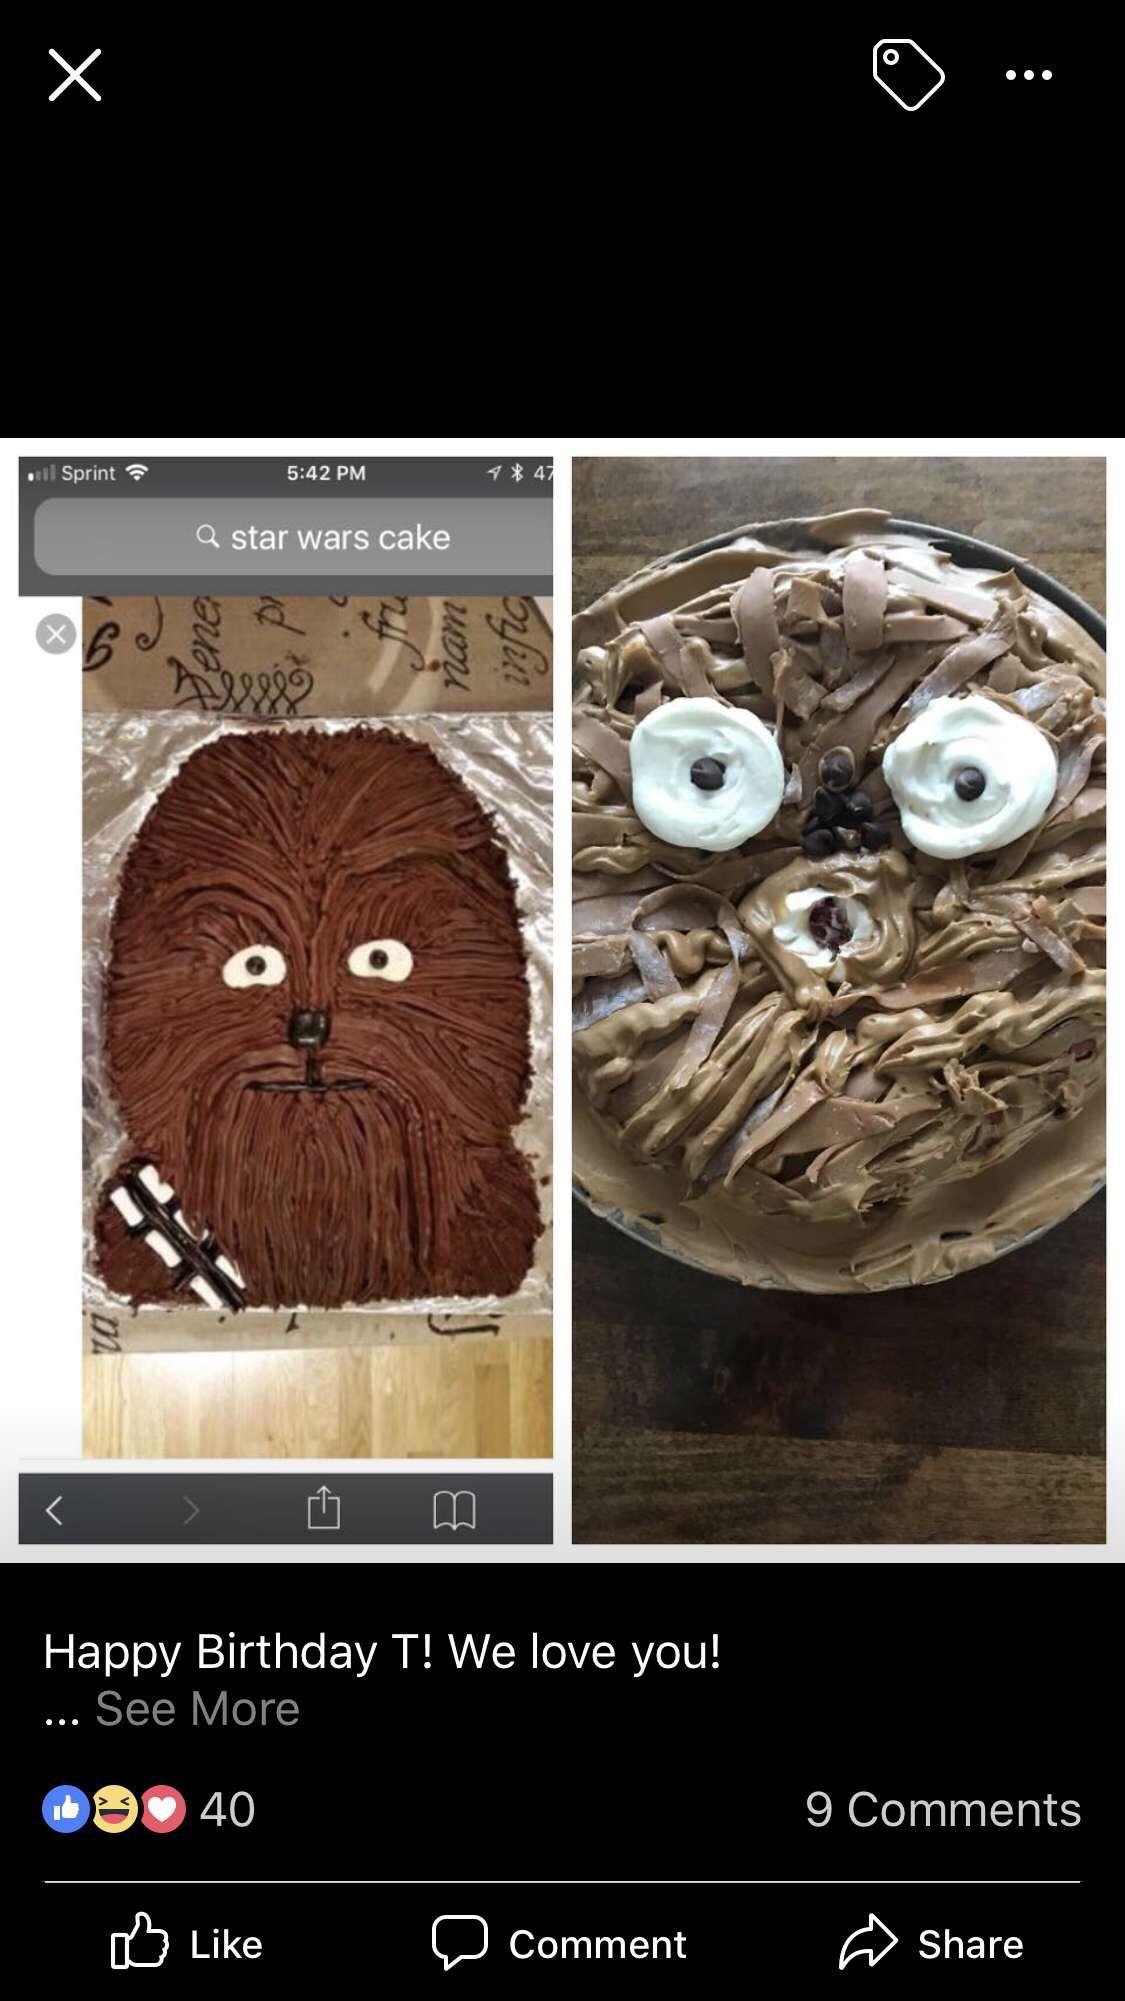 Friends Parents Tried To Re Do A Chewbacca Cake They Found On The Internet For His Birthday R Expectationvsreality Expectation Vs Reality Know Your Meme